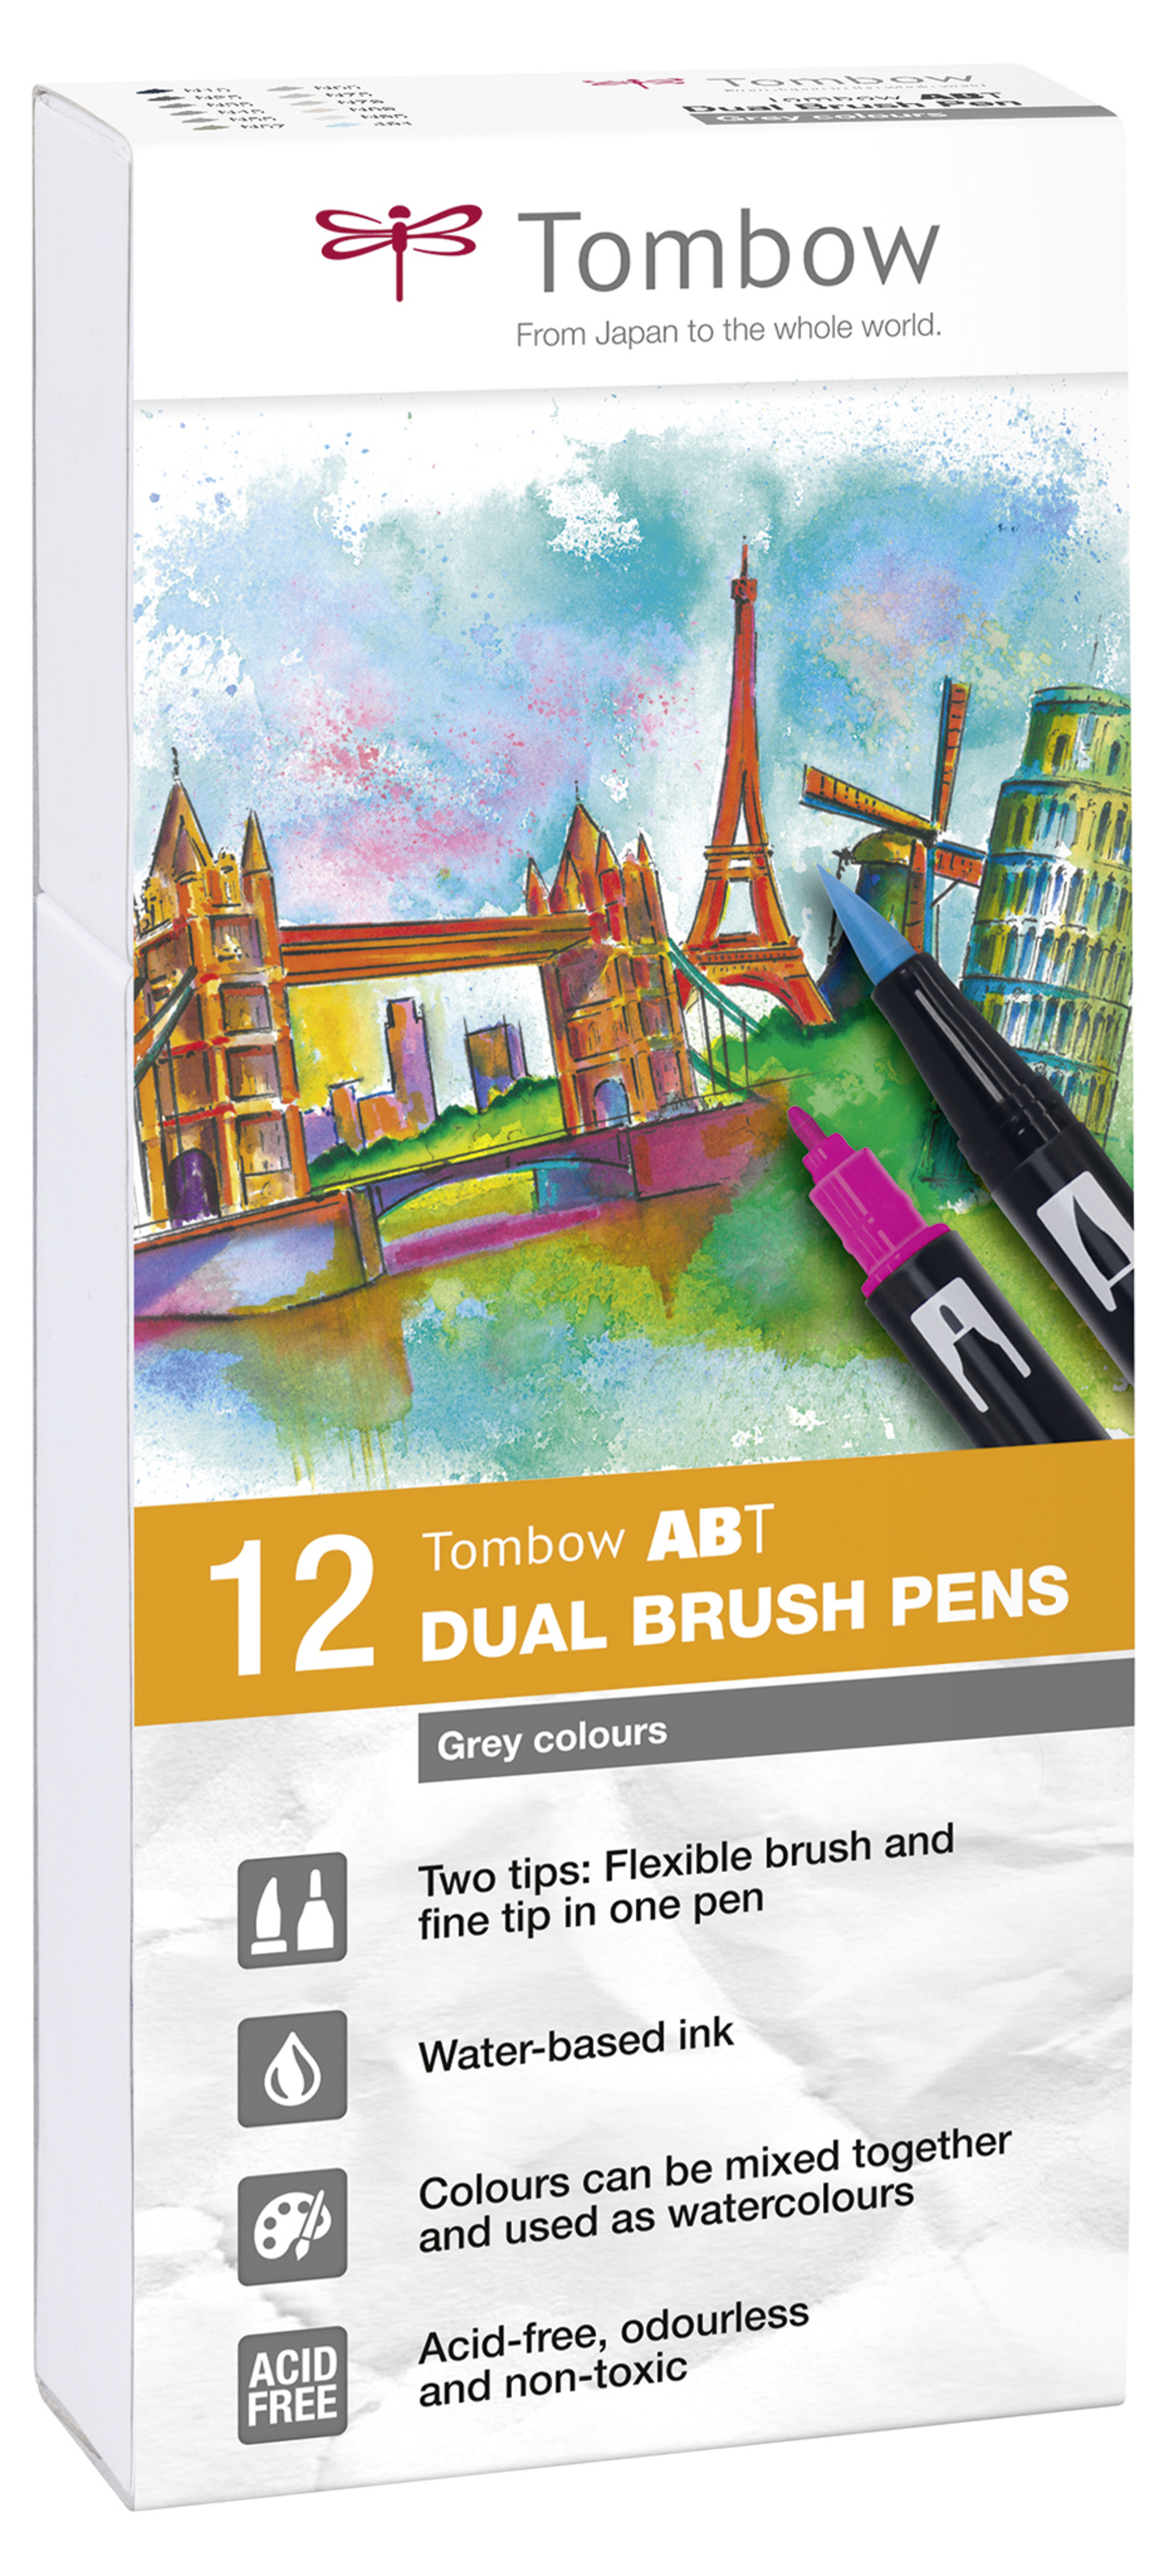 Tombow ABT Dual Brush Pen 2 tips Grey Tones PK12